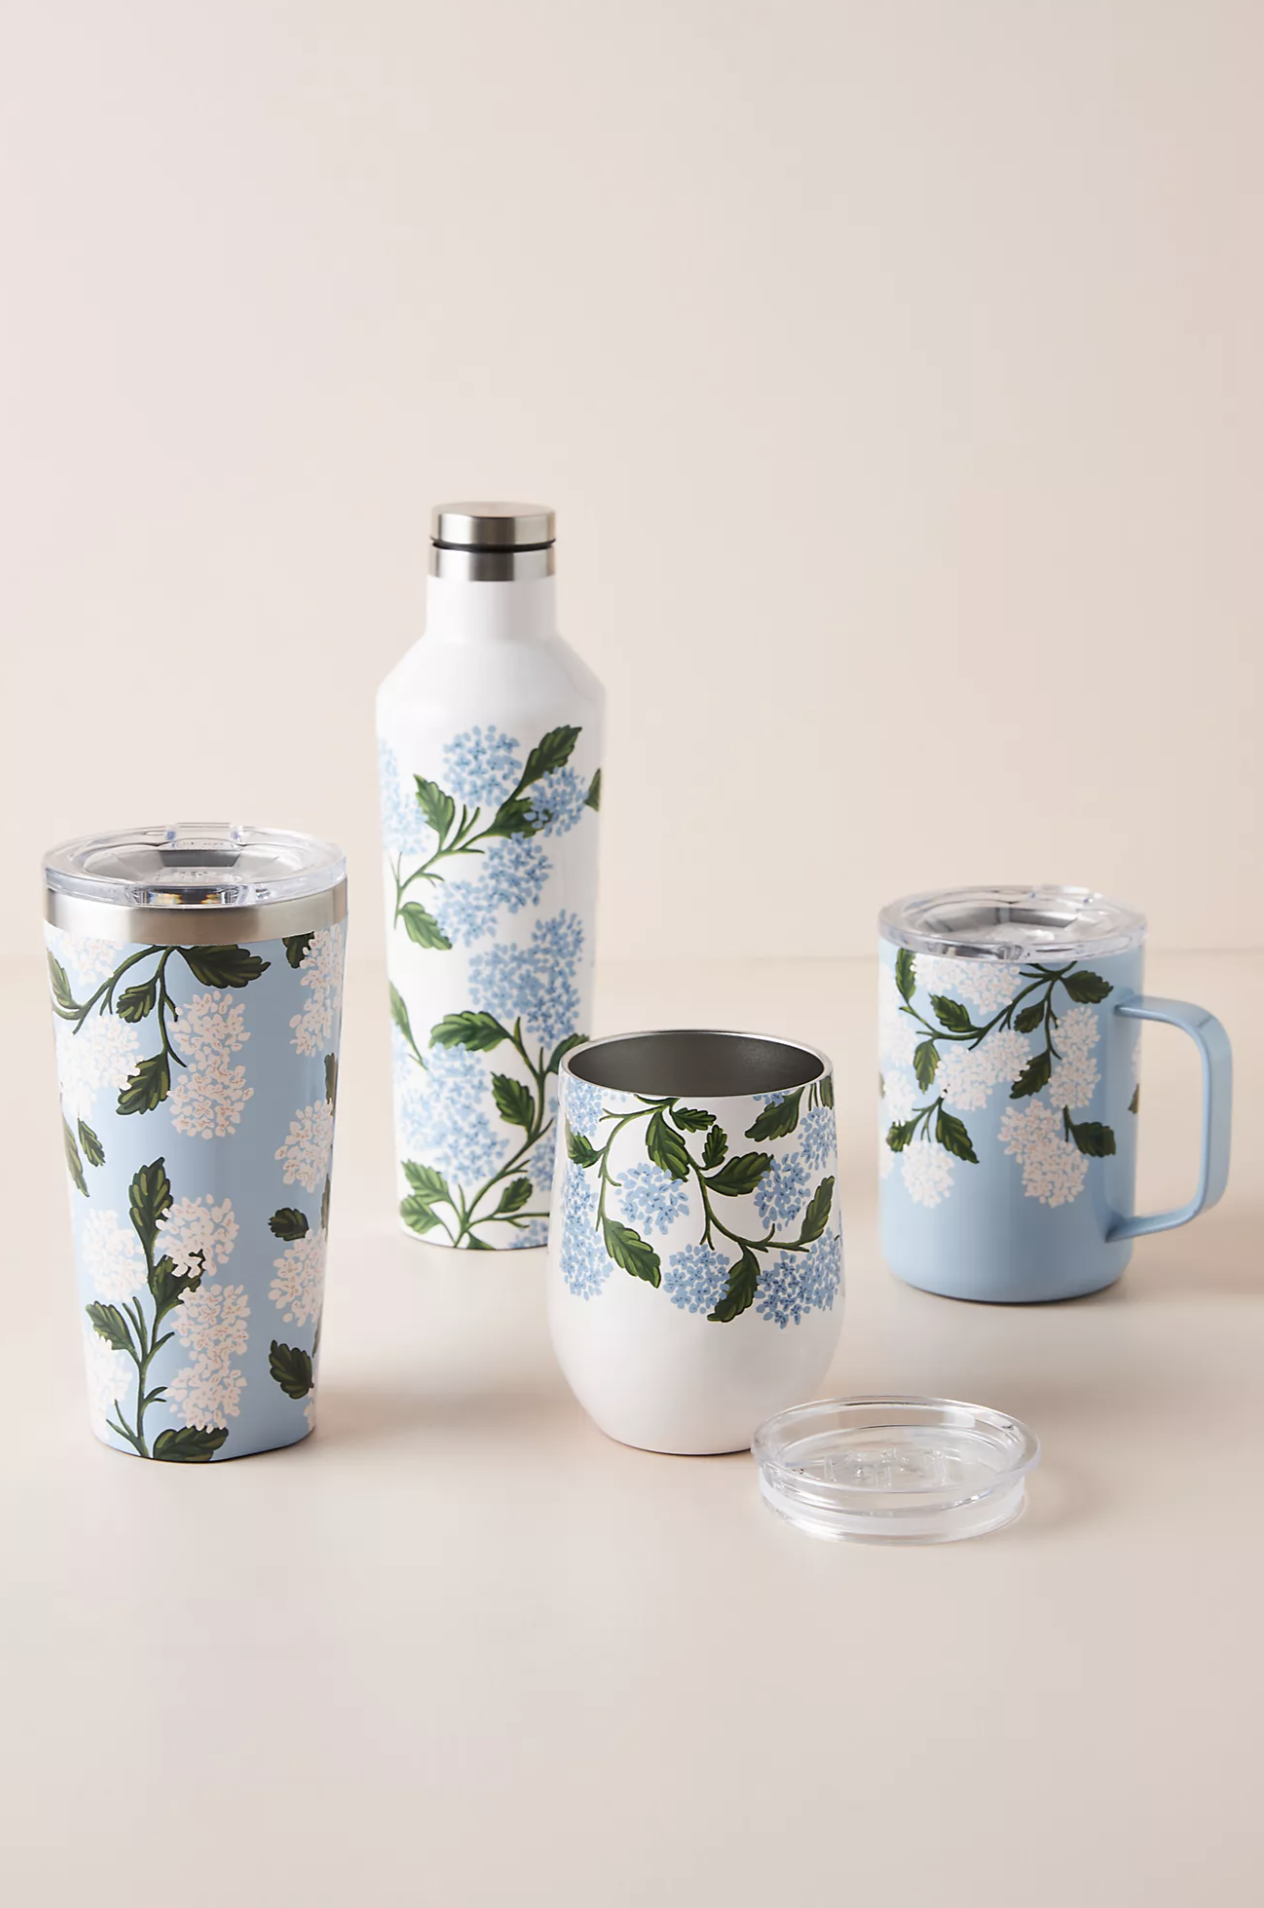 Insulated Hydrangea Drinkware Recent Home Finds 6/13